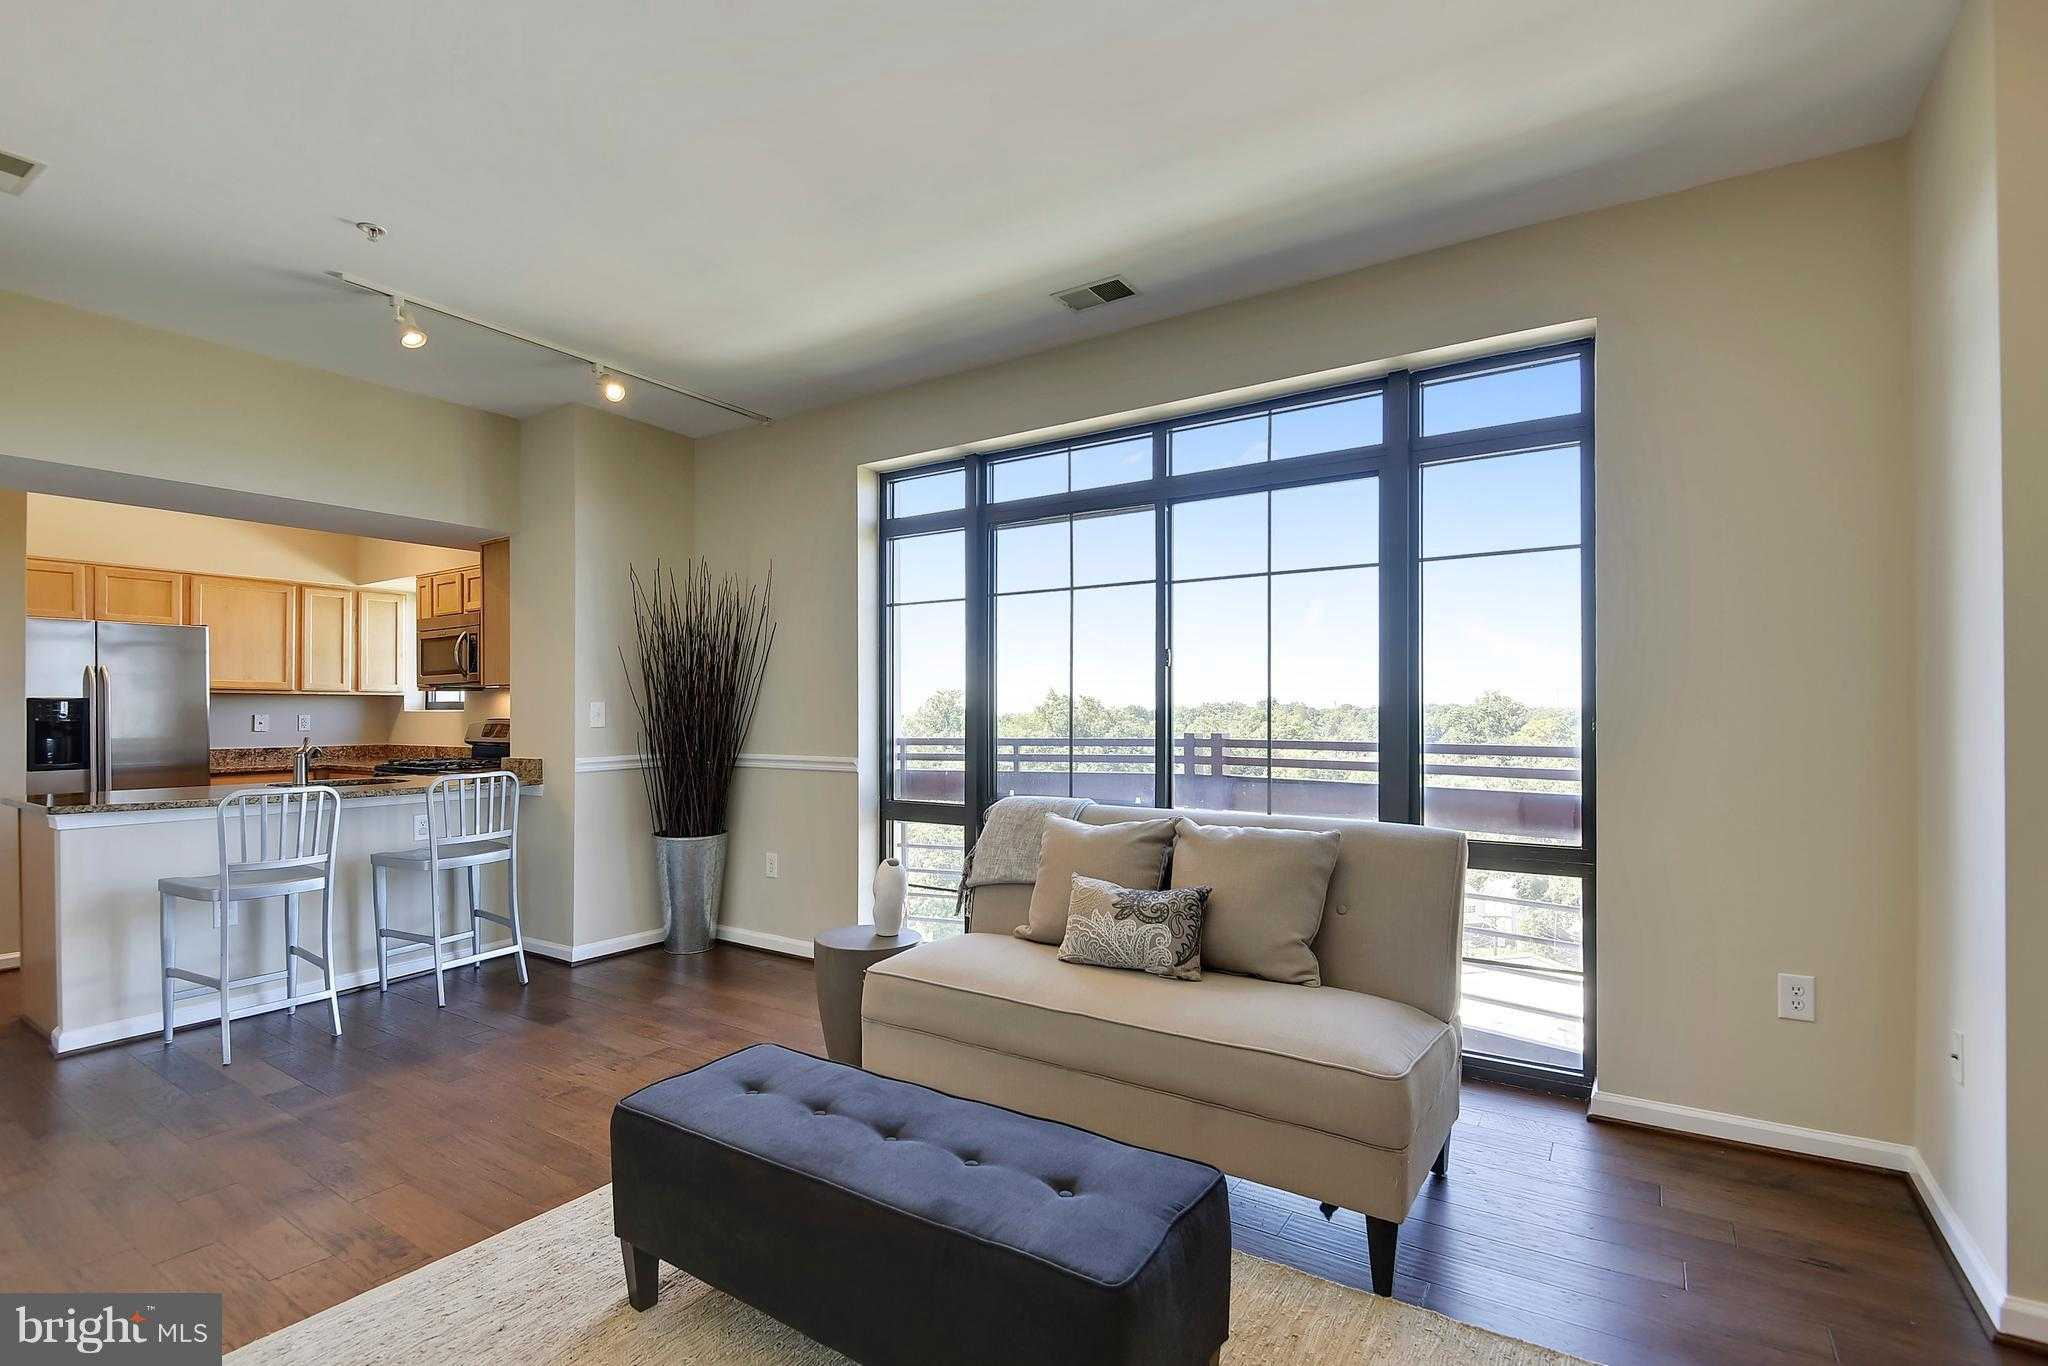 7923 EASTERN AVENUE Unit 1001, SILVER SPRING, MD, 20910 $345,000 Active  Just Listed